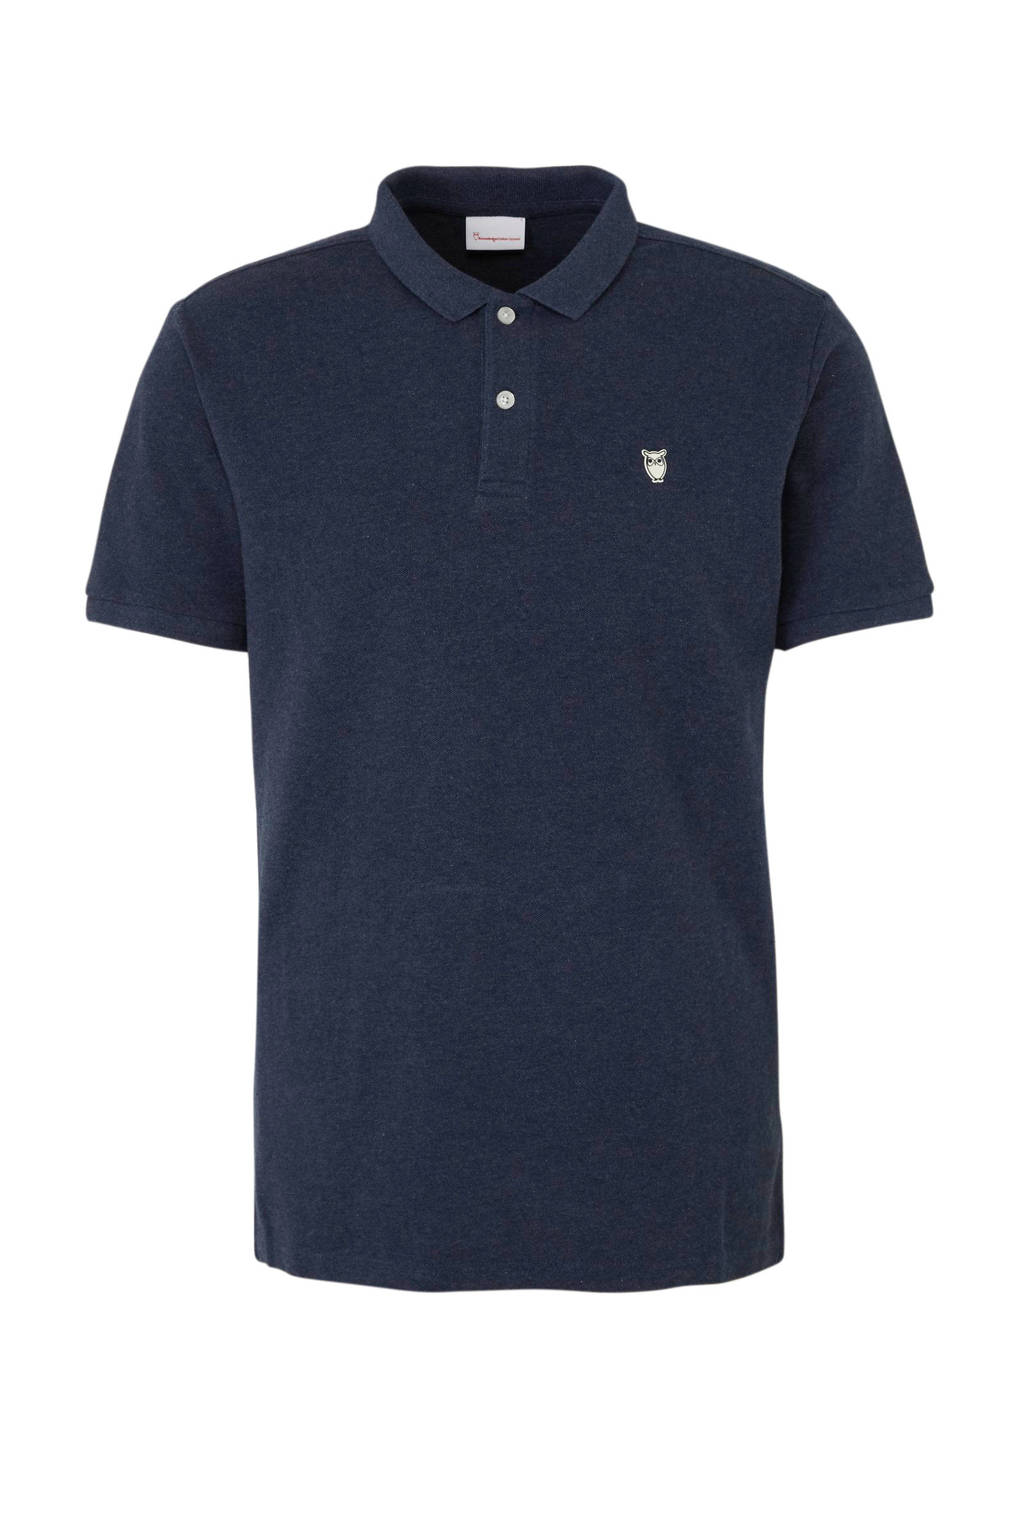 Knowledge Cotton Apparel gemêleerde regular fit polo blauw, Blauw